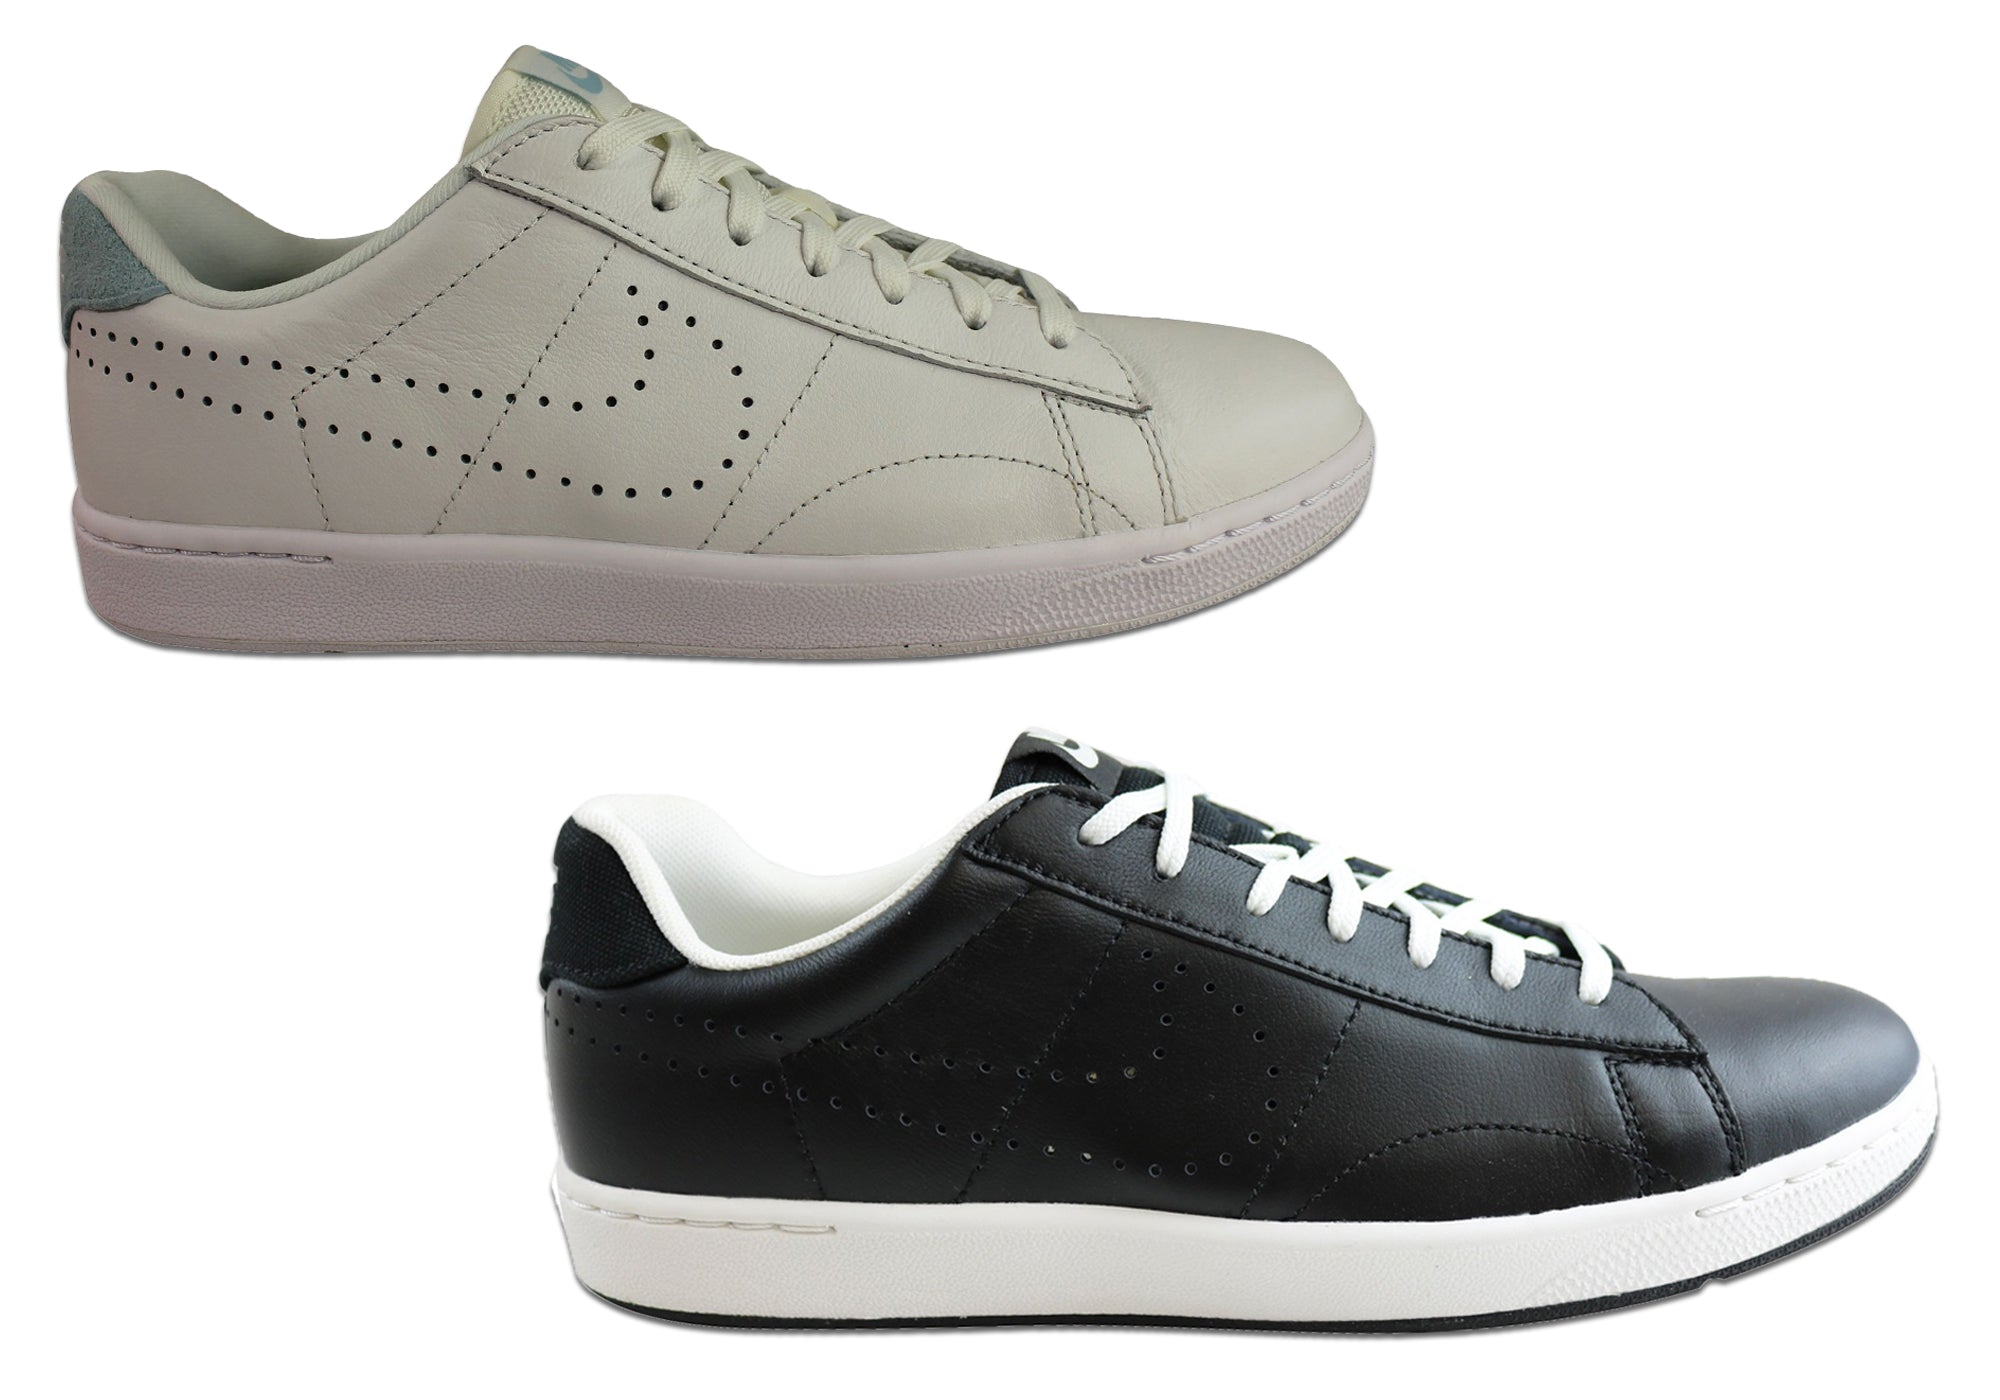 superior quality 28436 06a08 Details about NEW NIKE MENS TENNIS CLASSIC ULTRA LEATHER LACE UP CASUAL  SHOES